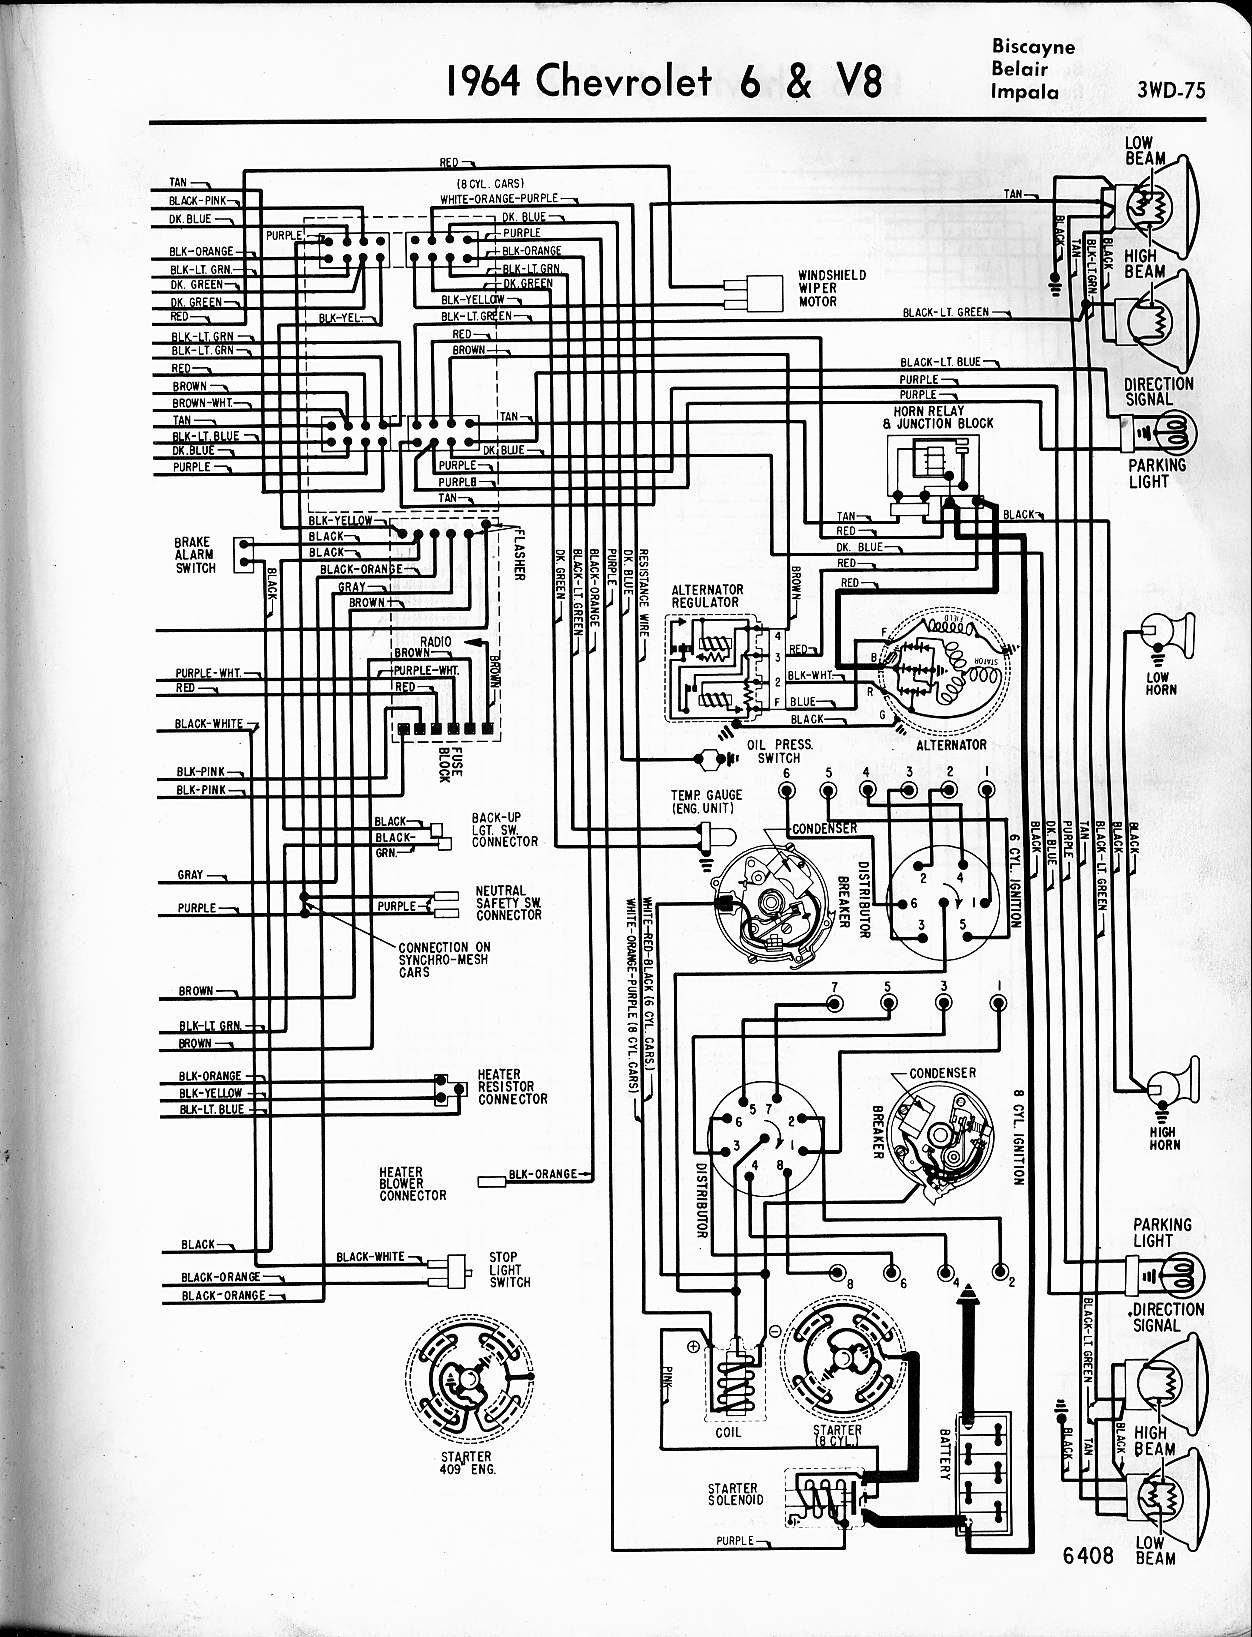 hight resolution of 1964 chevy wiring diagram wiring diagram origin 2002 chevy trailblazer 4x4 wiring diagram 1964 gm ignition wiring diagram